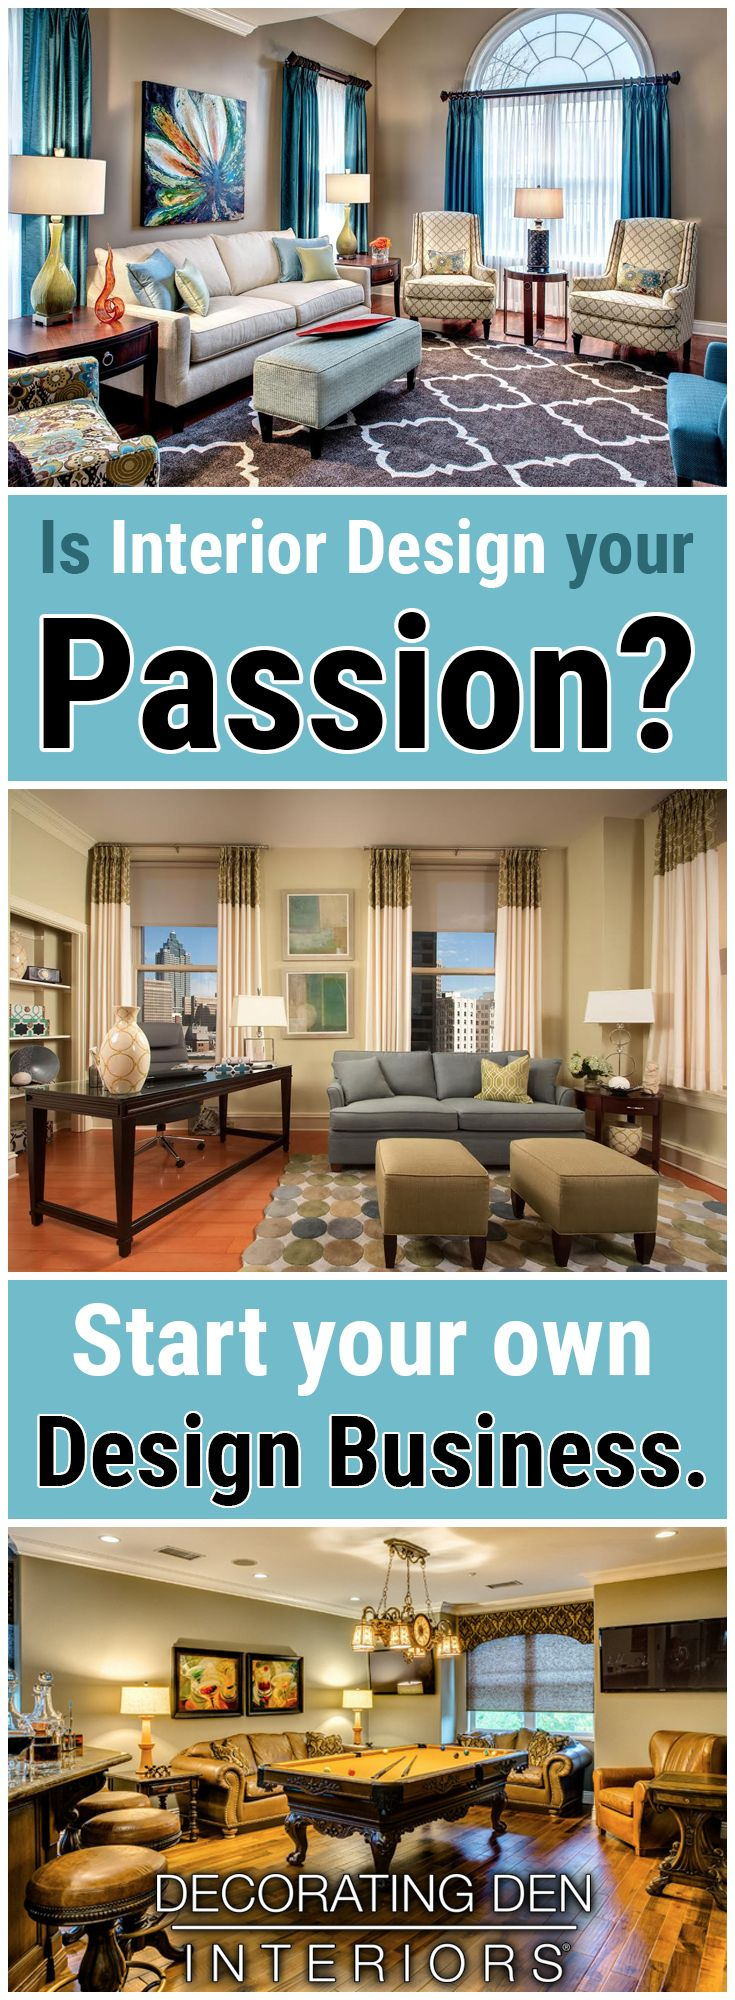 Have A Knack For Interior Design Be Your Own Boss And Make The World Beautiful One Room At A Time Design Budget Home Decorating Interior Design